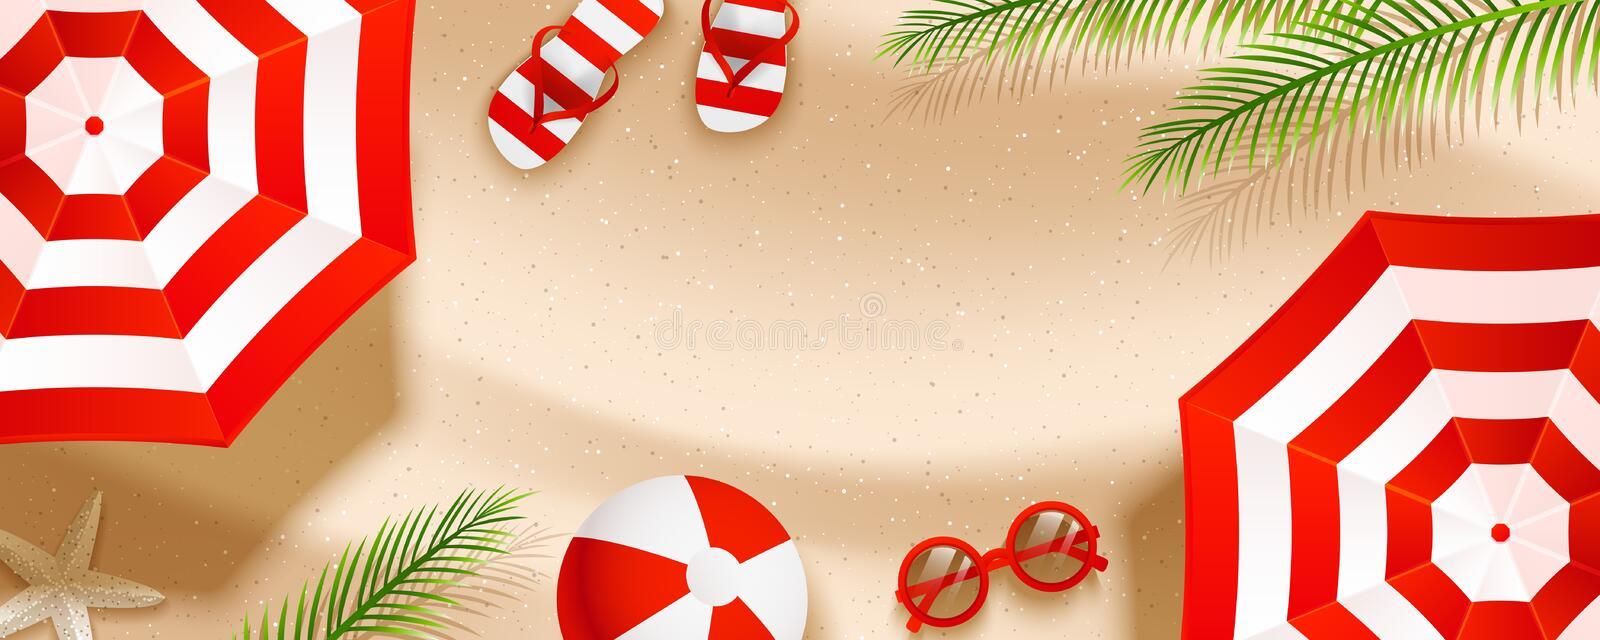 Summer beach horizontal banner with sun umbrellas, flip flops, sunglasses, ball and palm leaves on sand. Background vector illustration